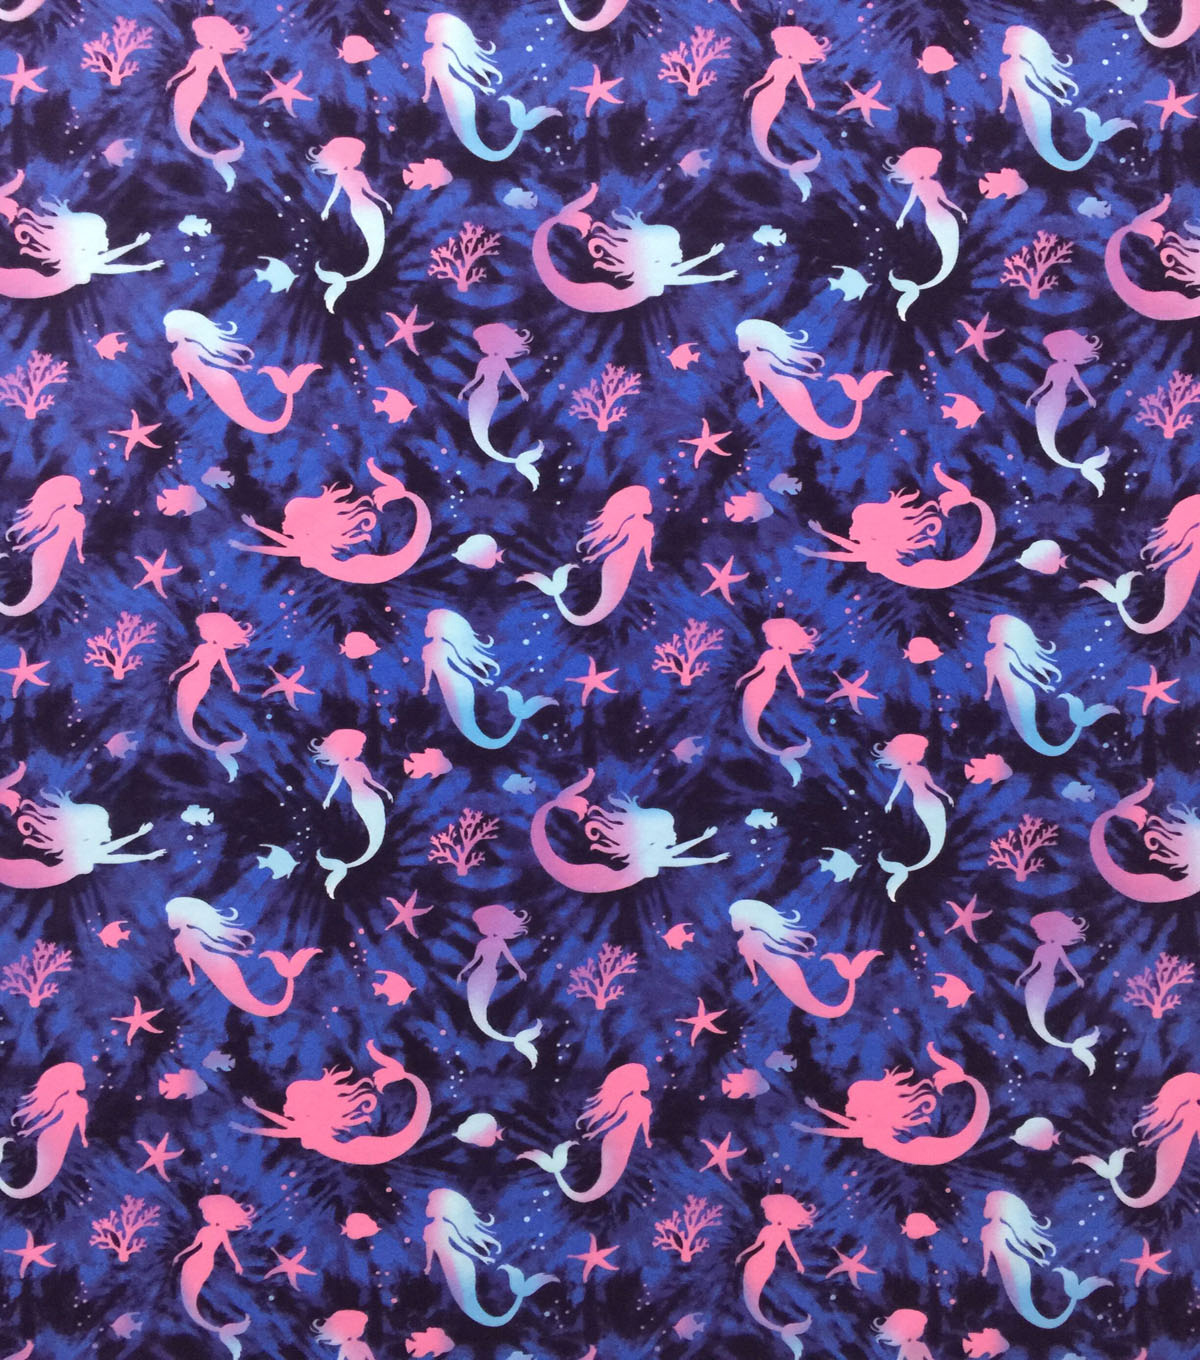 Doodles Juvenile Apparel Fabric-Blue Tie Dye Mermaids